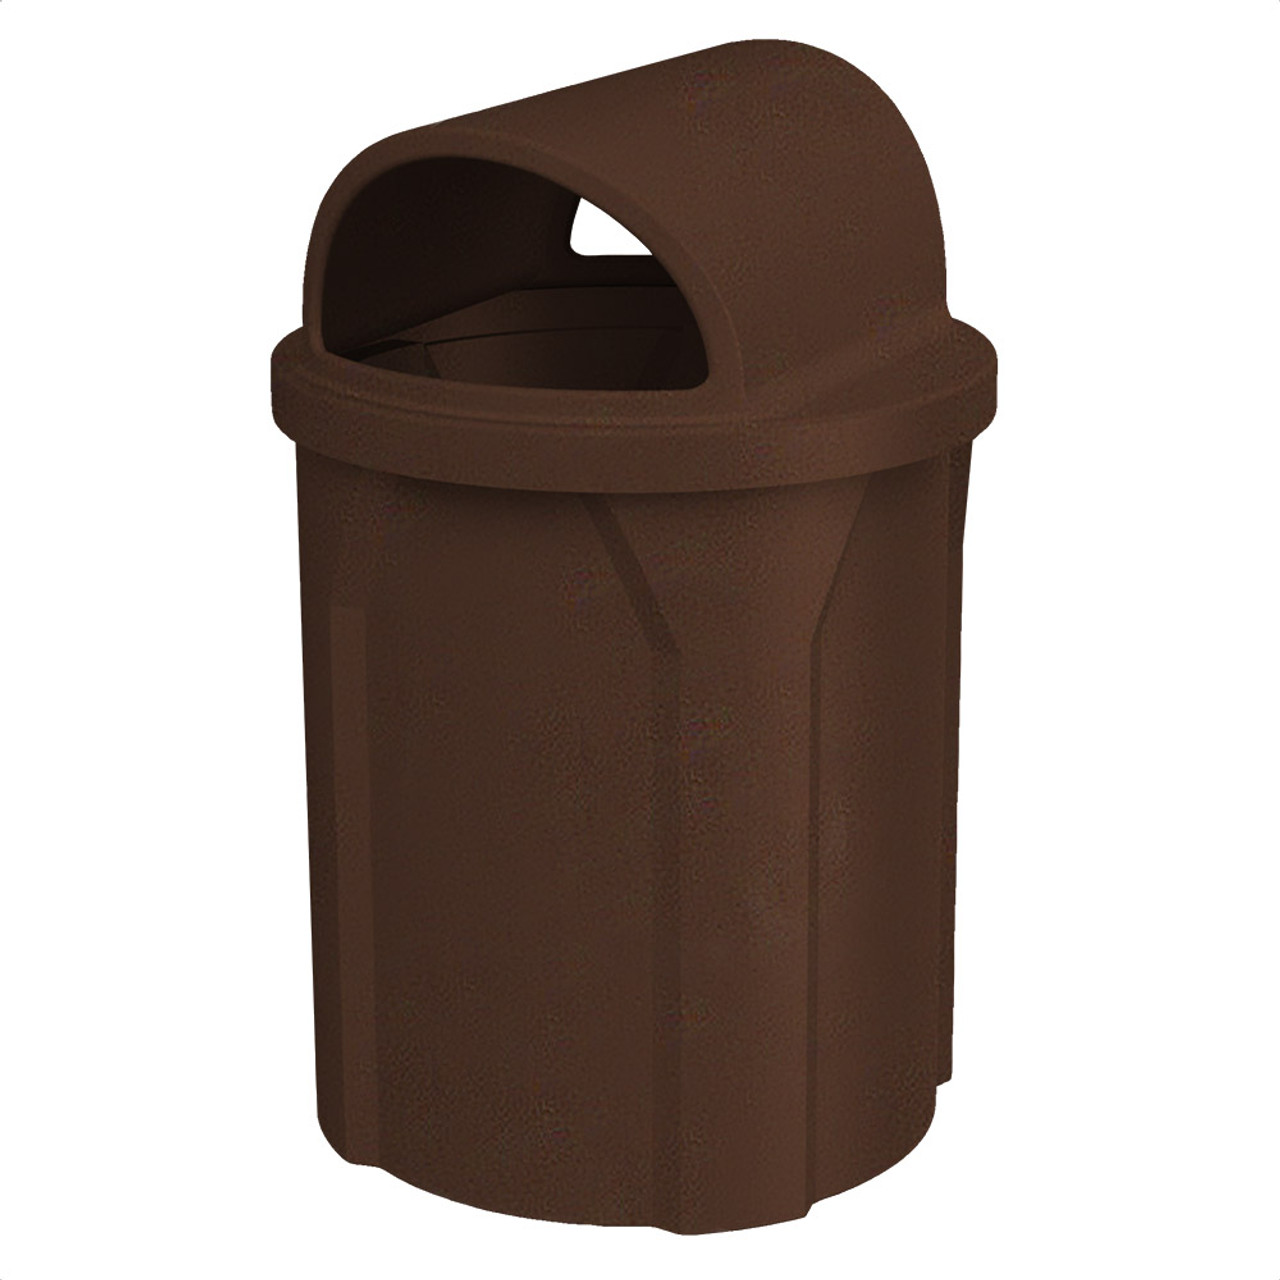 42 Gallon 2 Way Open Dome Top Trash Can S7103A-00 BROWN GRANITE